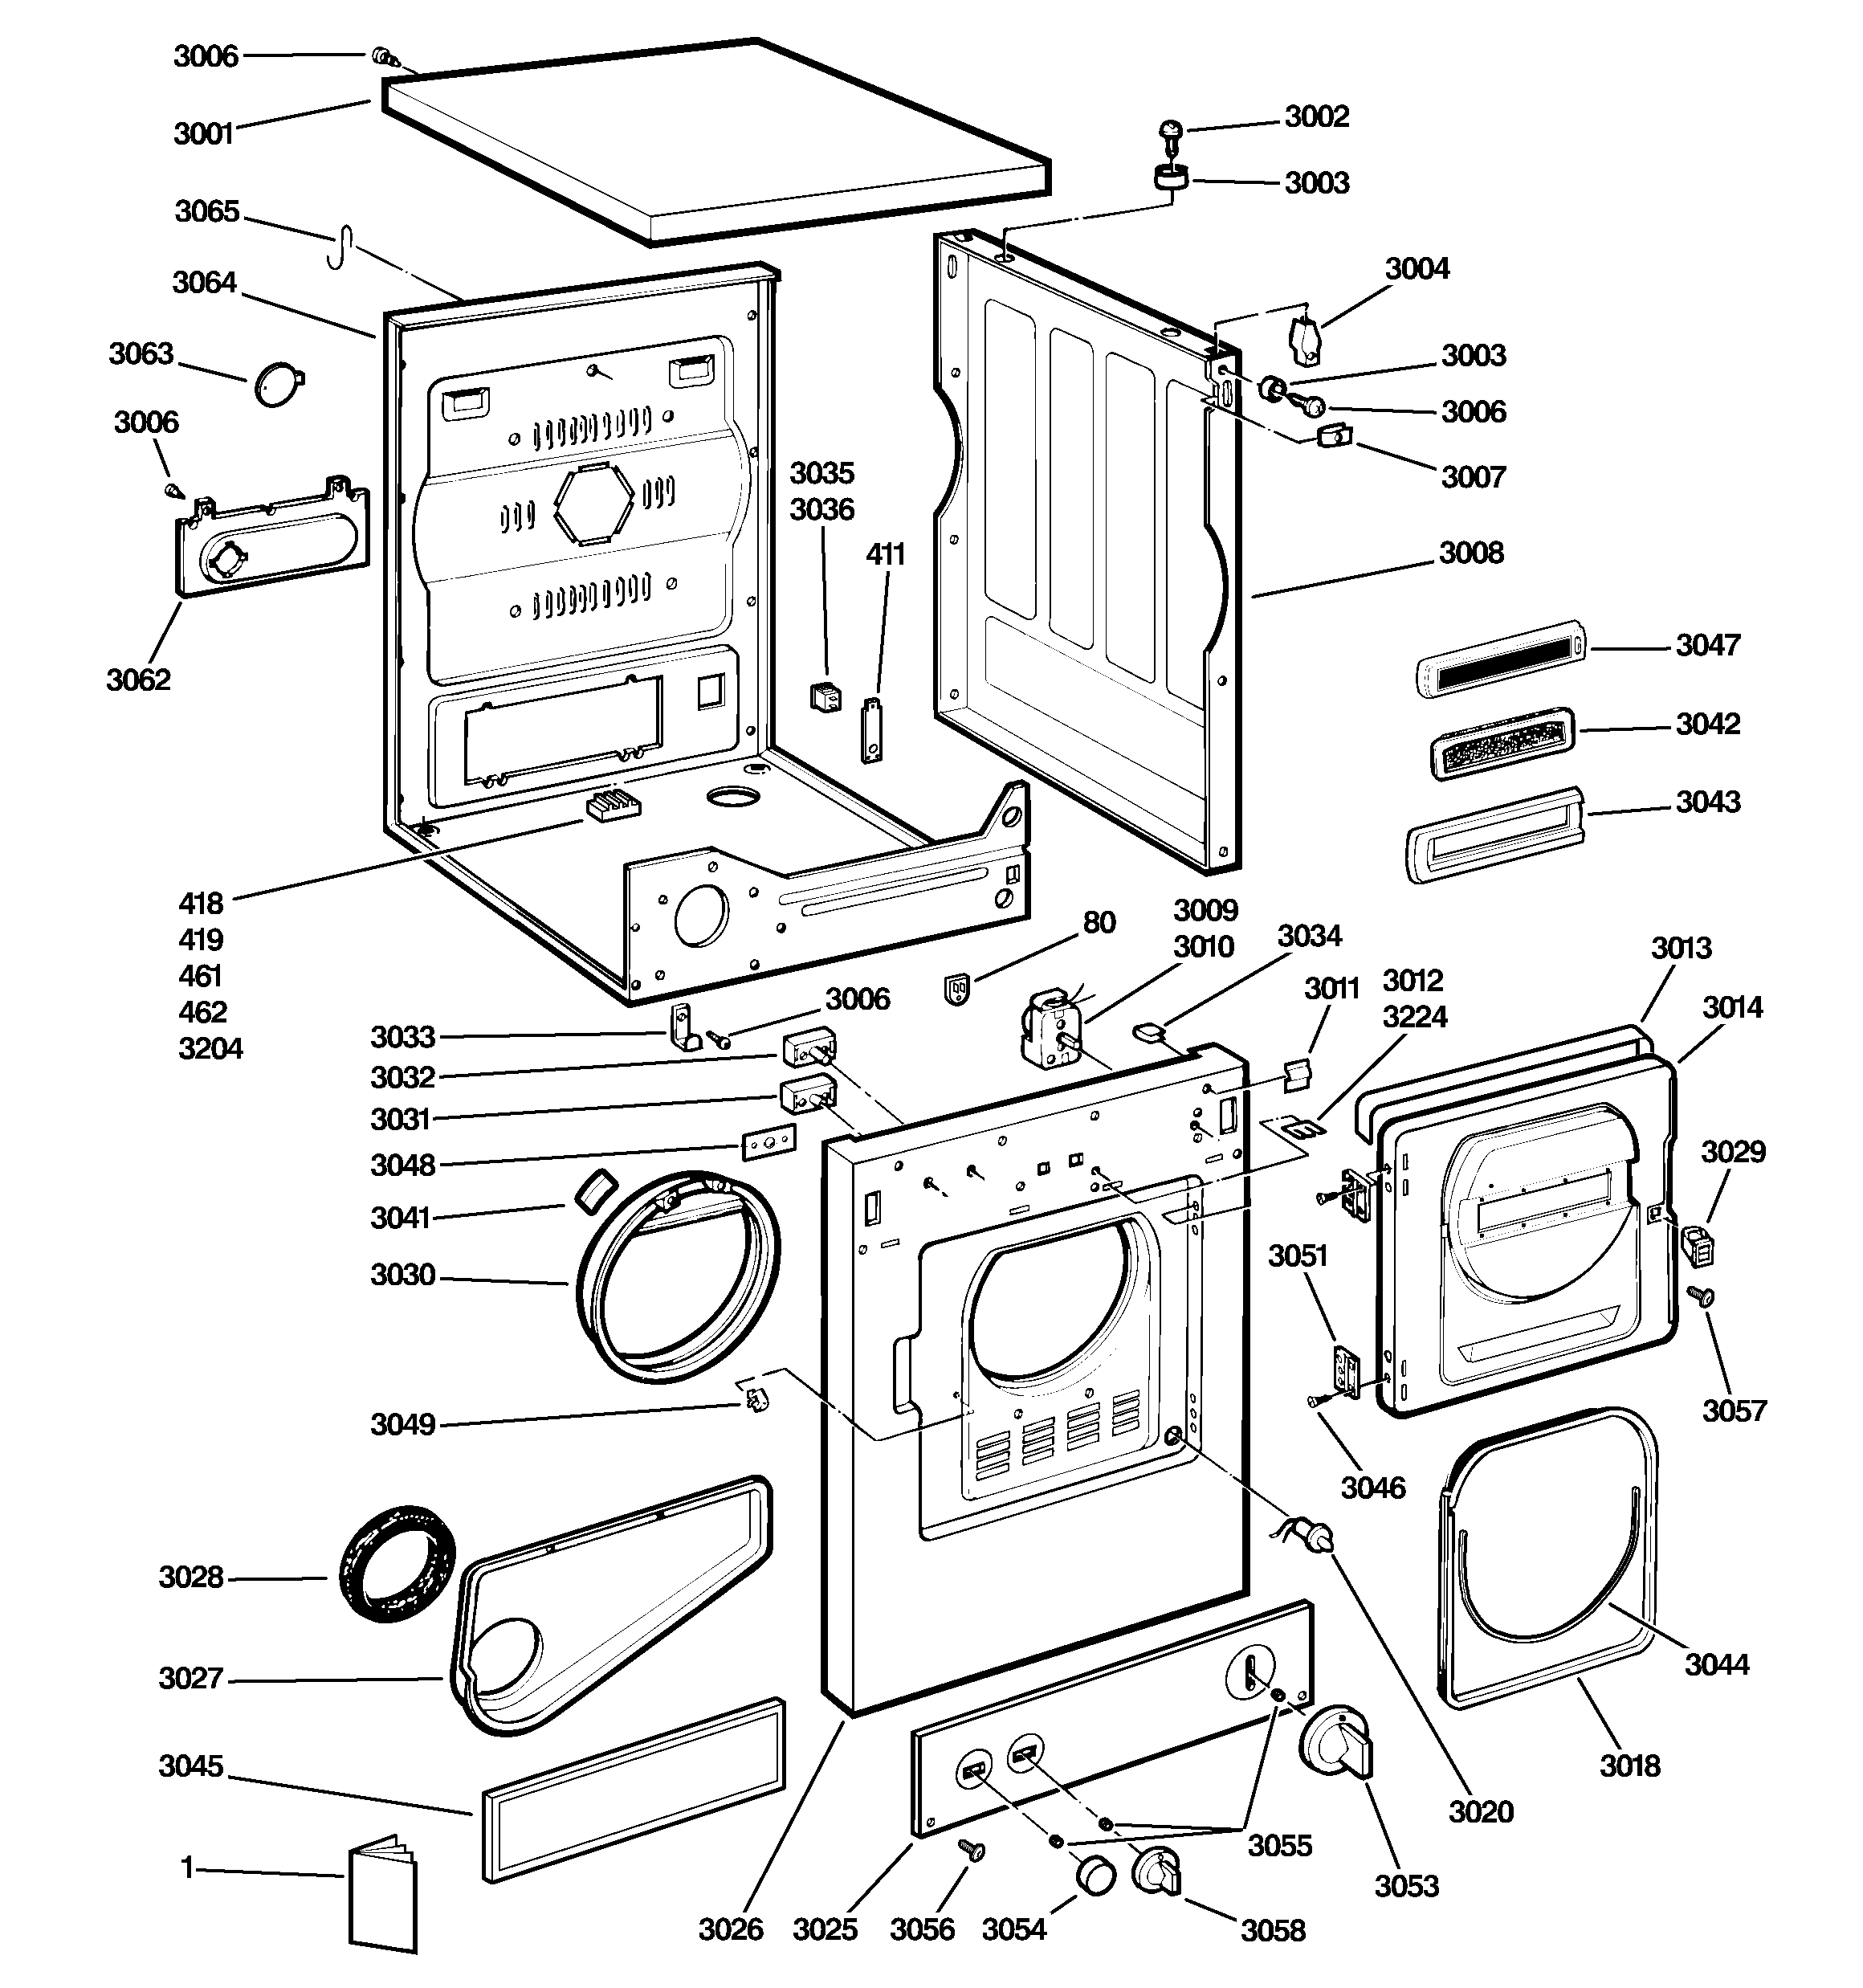 Ge+dishwasher+parts+diagram